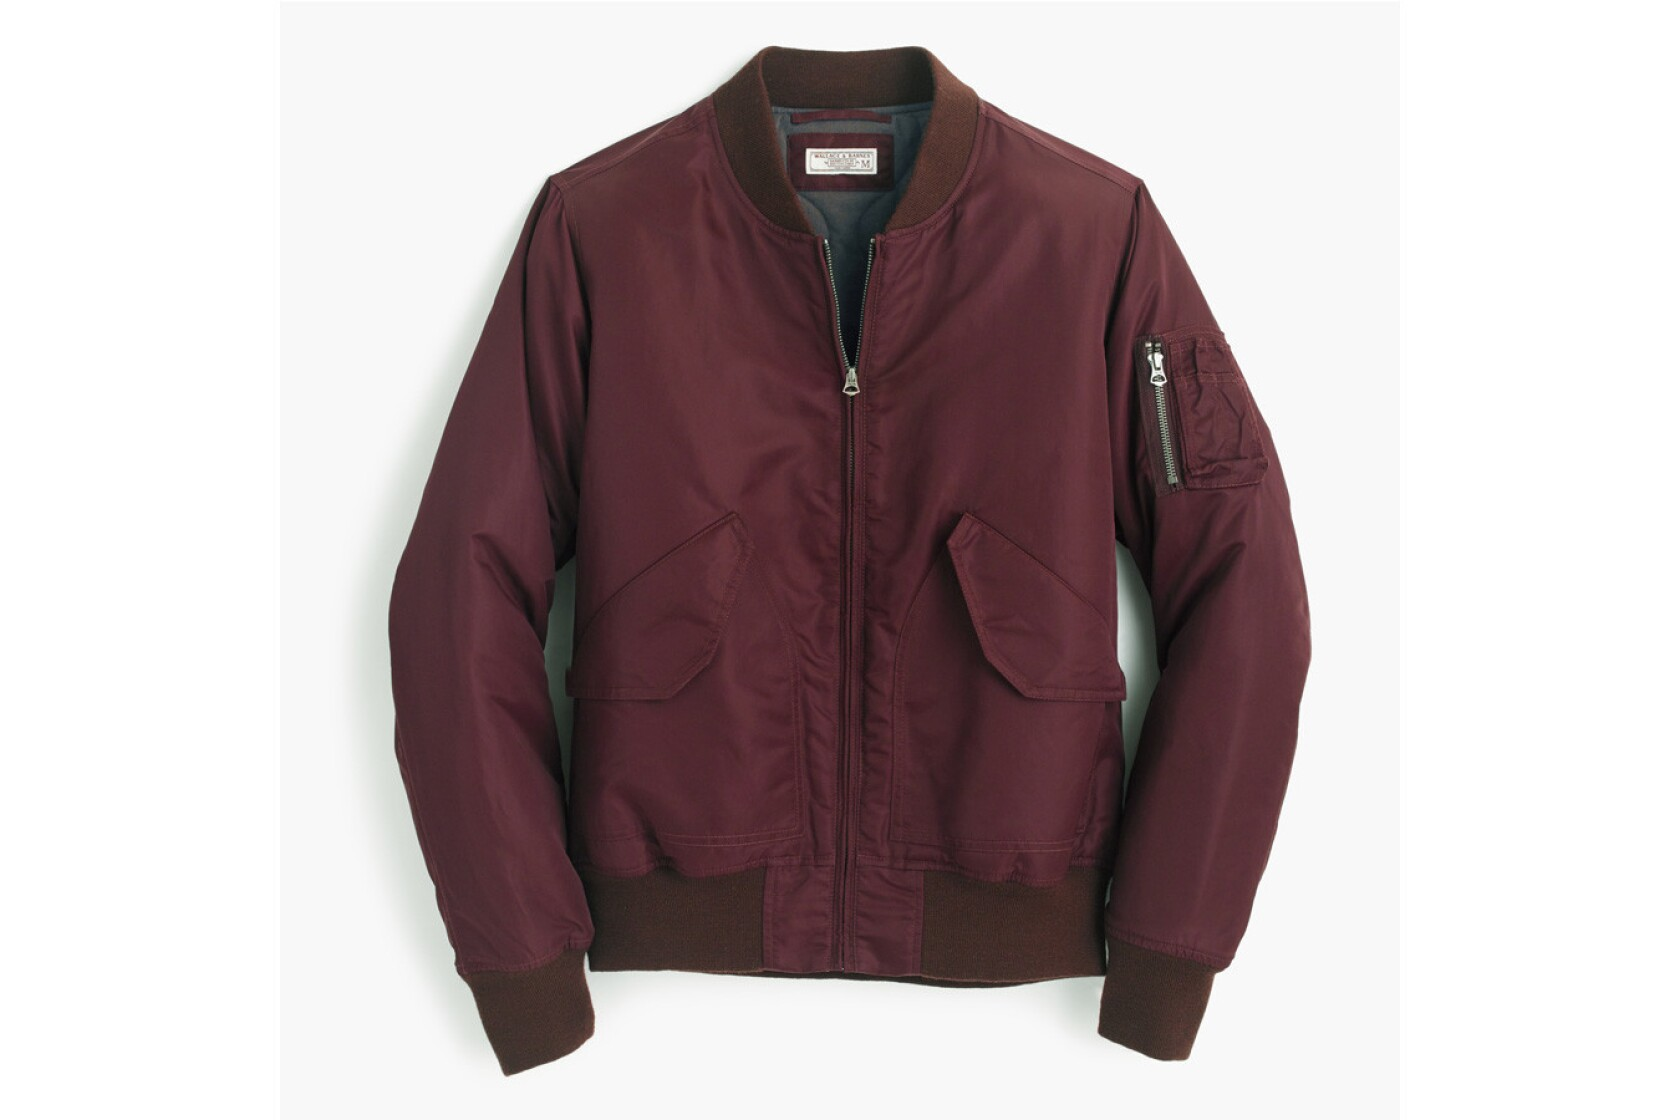 089d550da Bomber jackets every man should own - Los Angeles Times